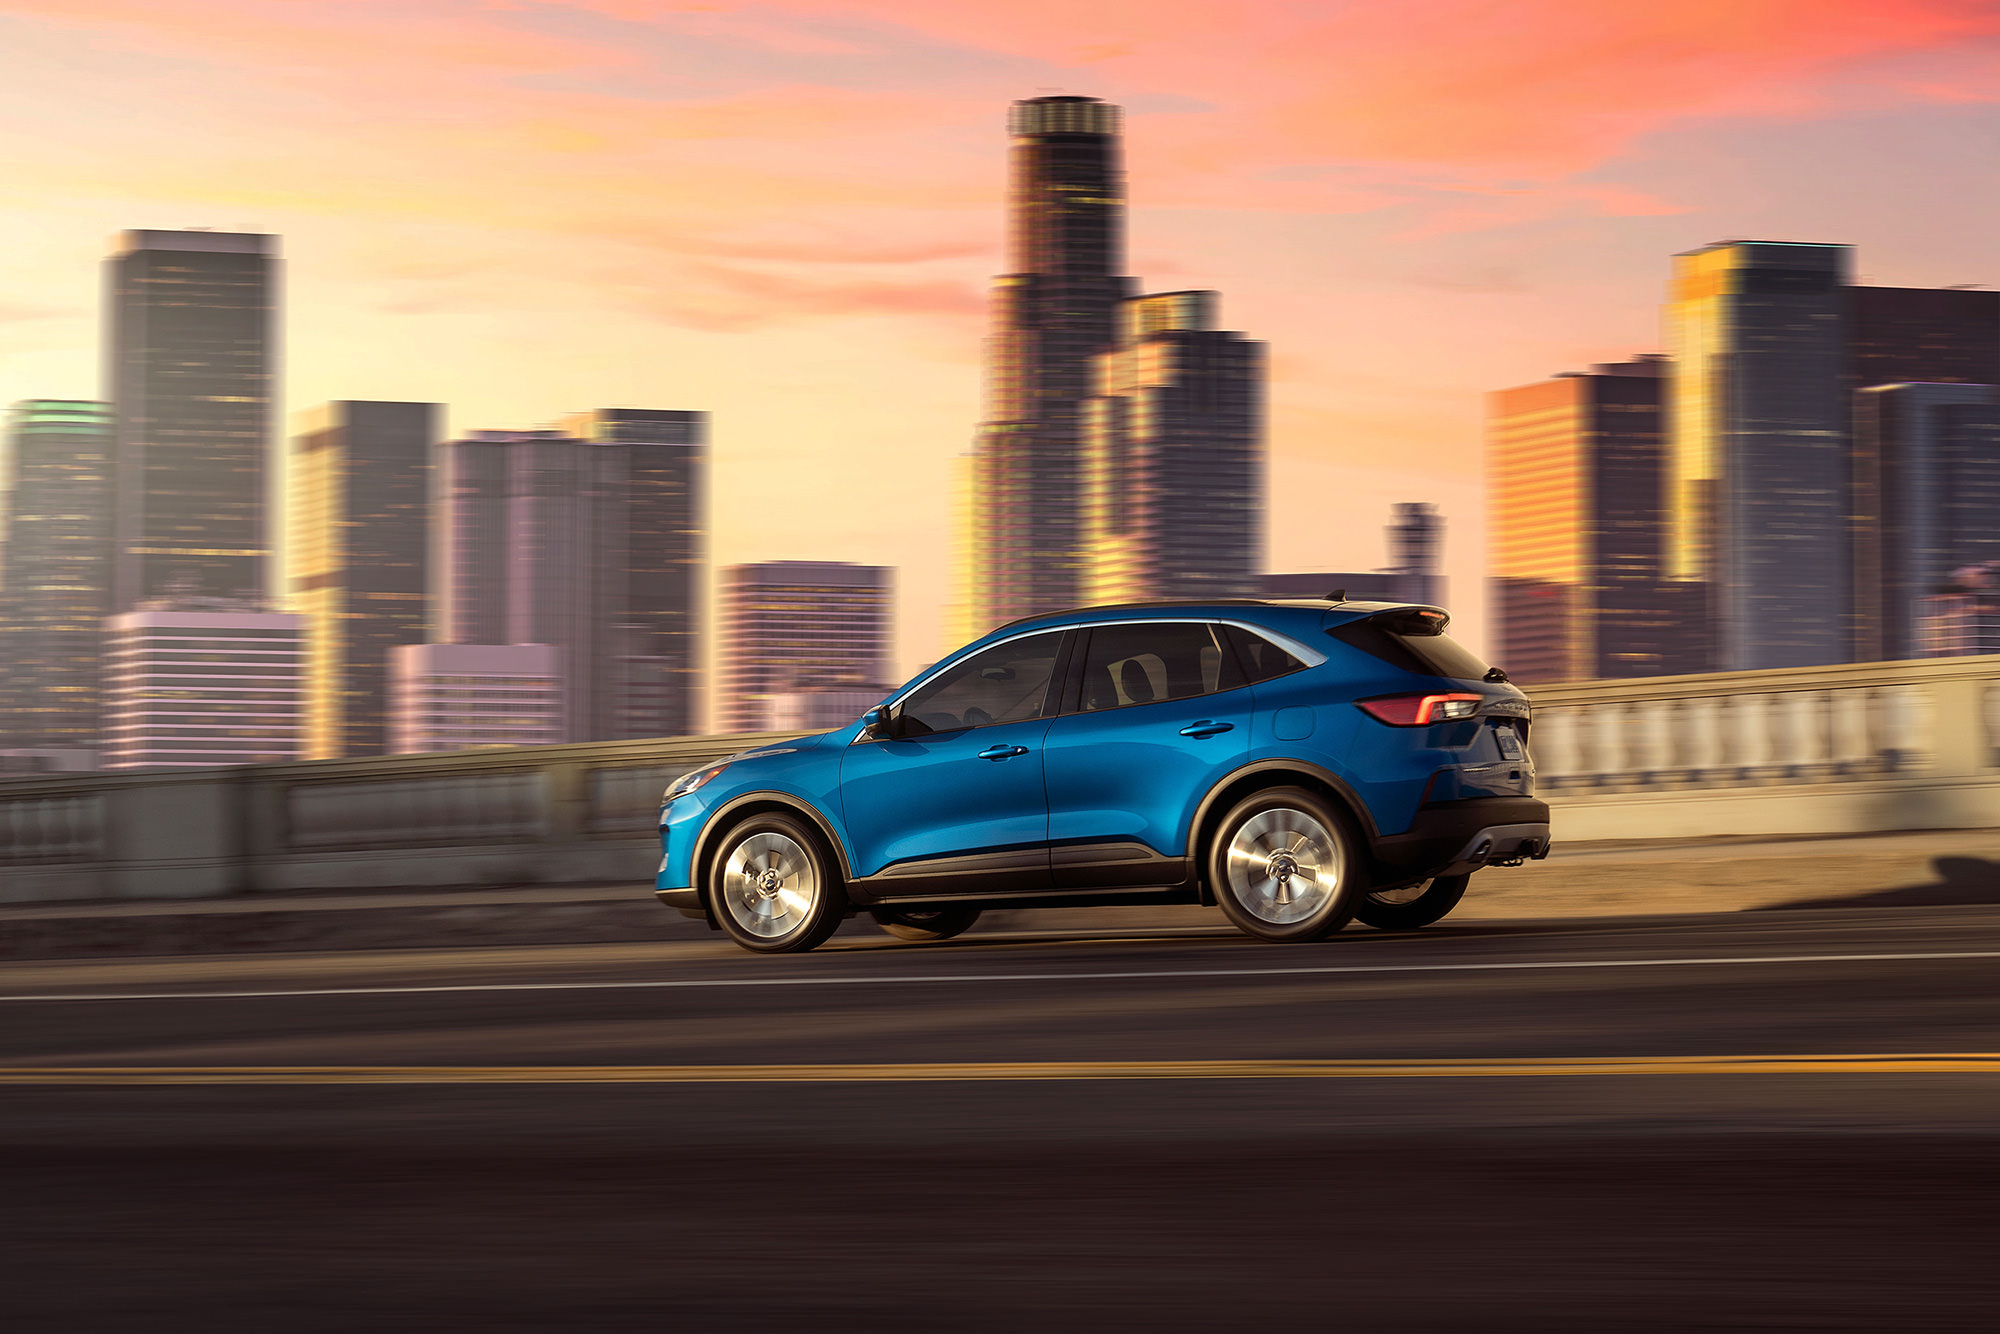 Commercial photoshoot for the 2020 Ford Escape in downtown Los Angeles, CA